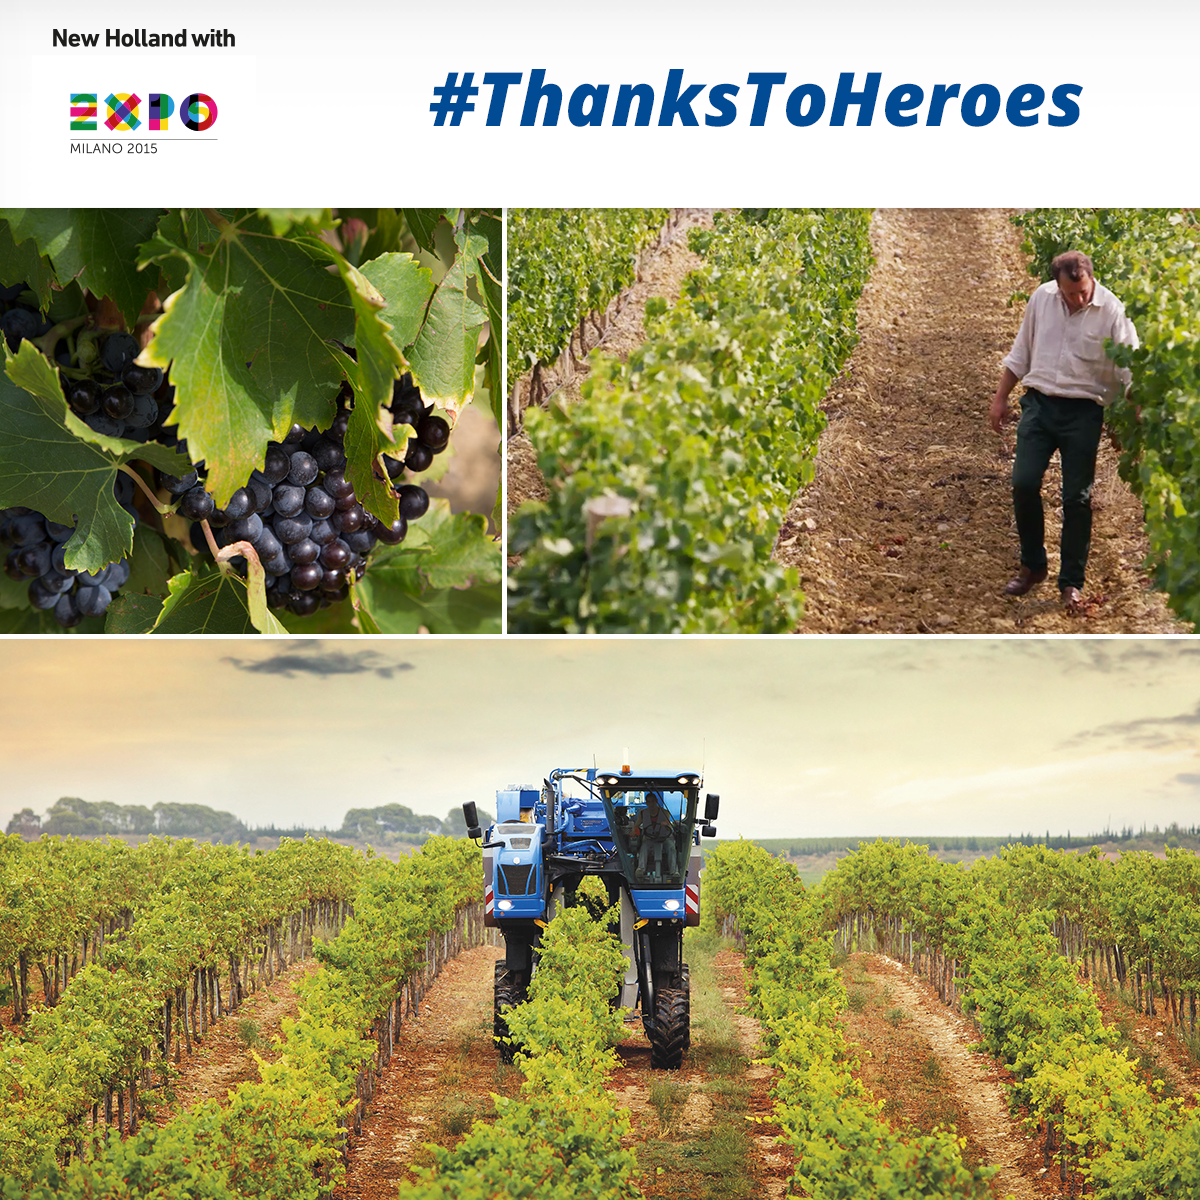 Xavier can walk along vineyards and know intuitively when it's time to pick. #ThanksToHeroes http://t.co/6X4bzMjsr5 http://t.co/91vY0NerZm